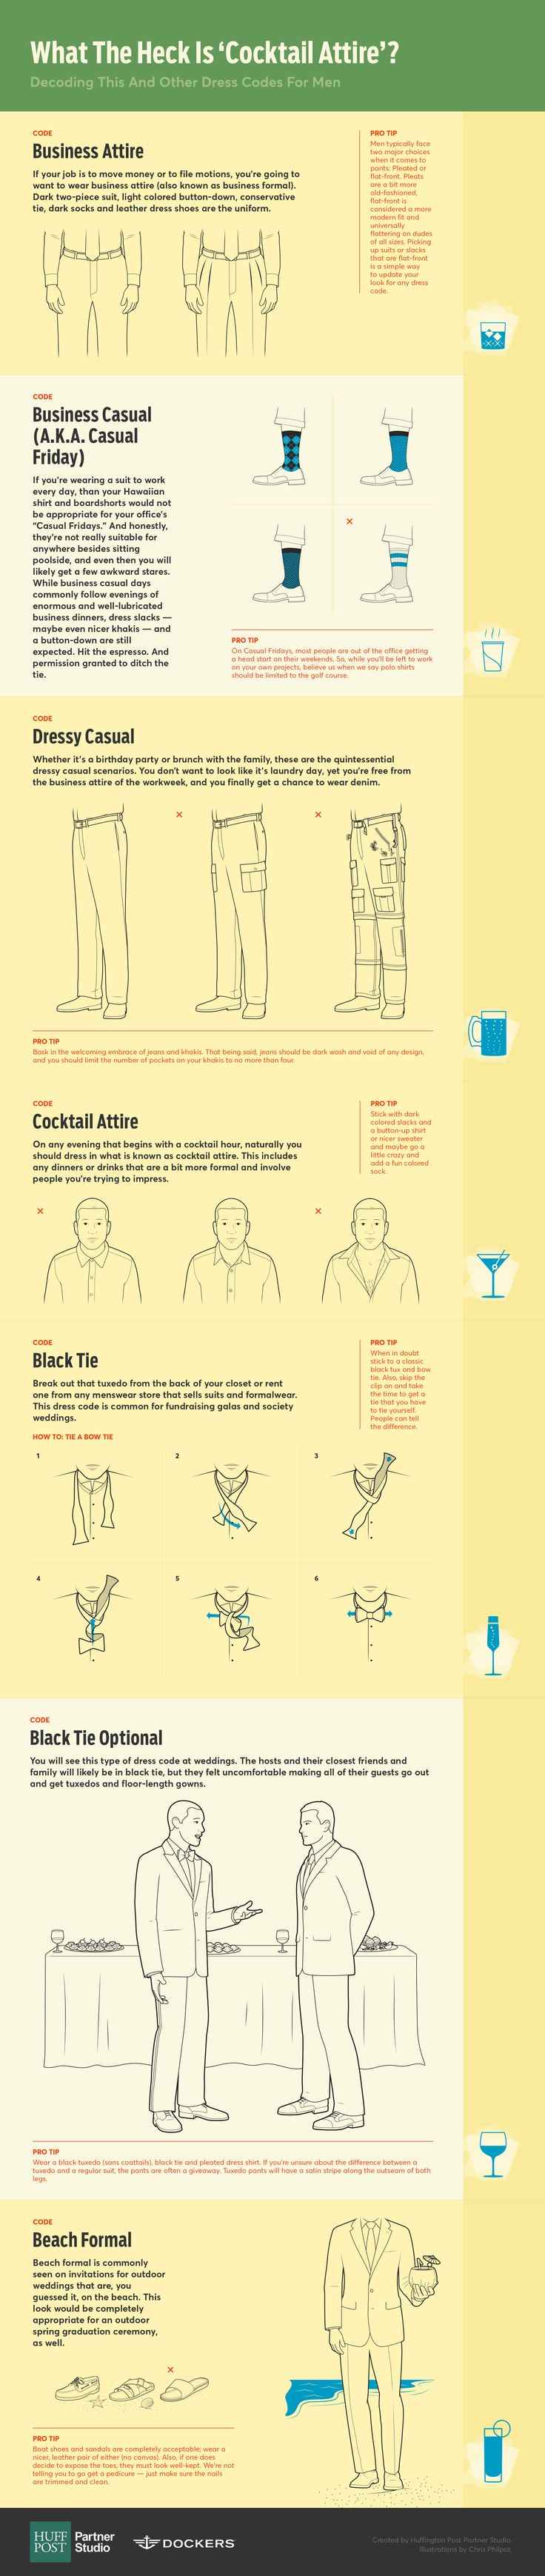 What The Heck Is 'Cocktail Attire? Decoding This And Other Dress Codes For Men